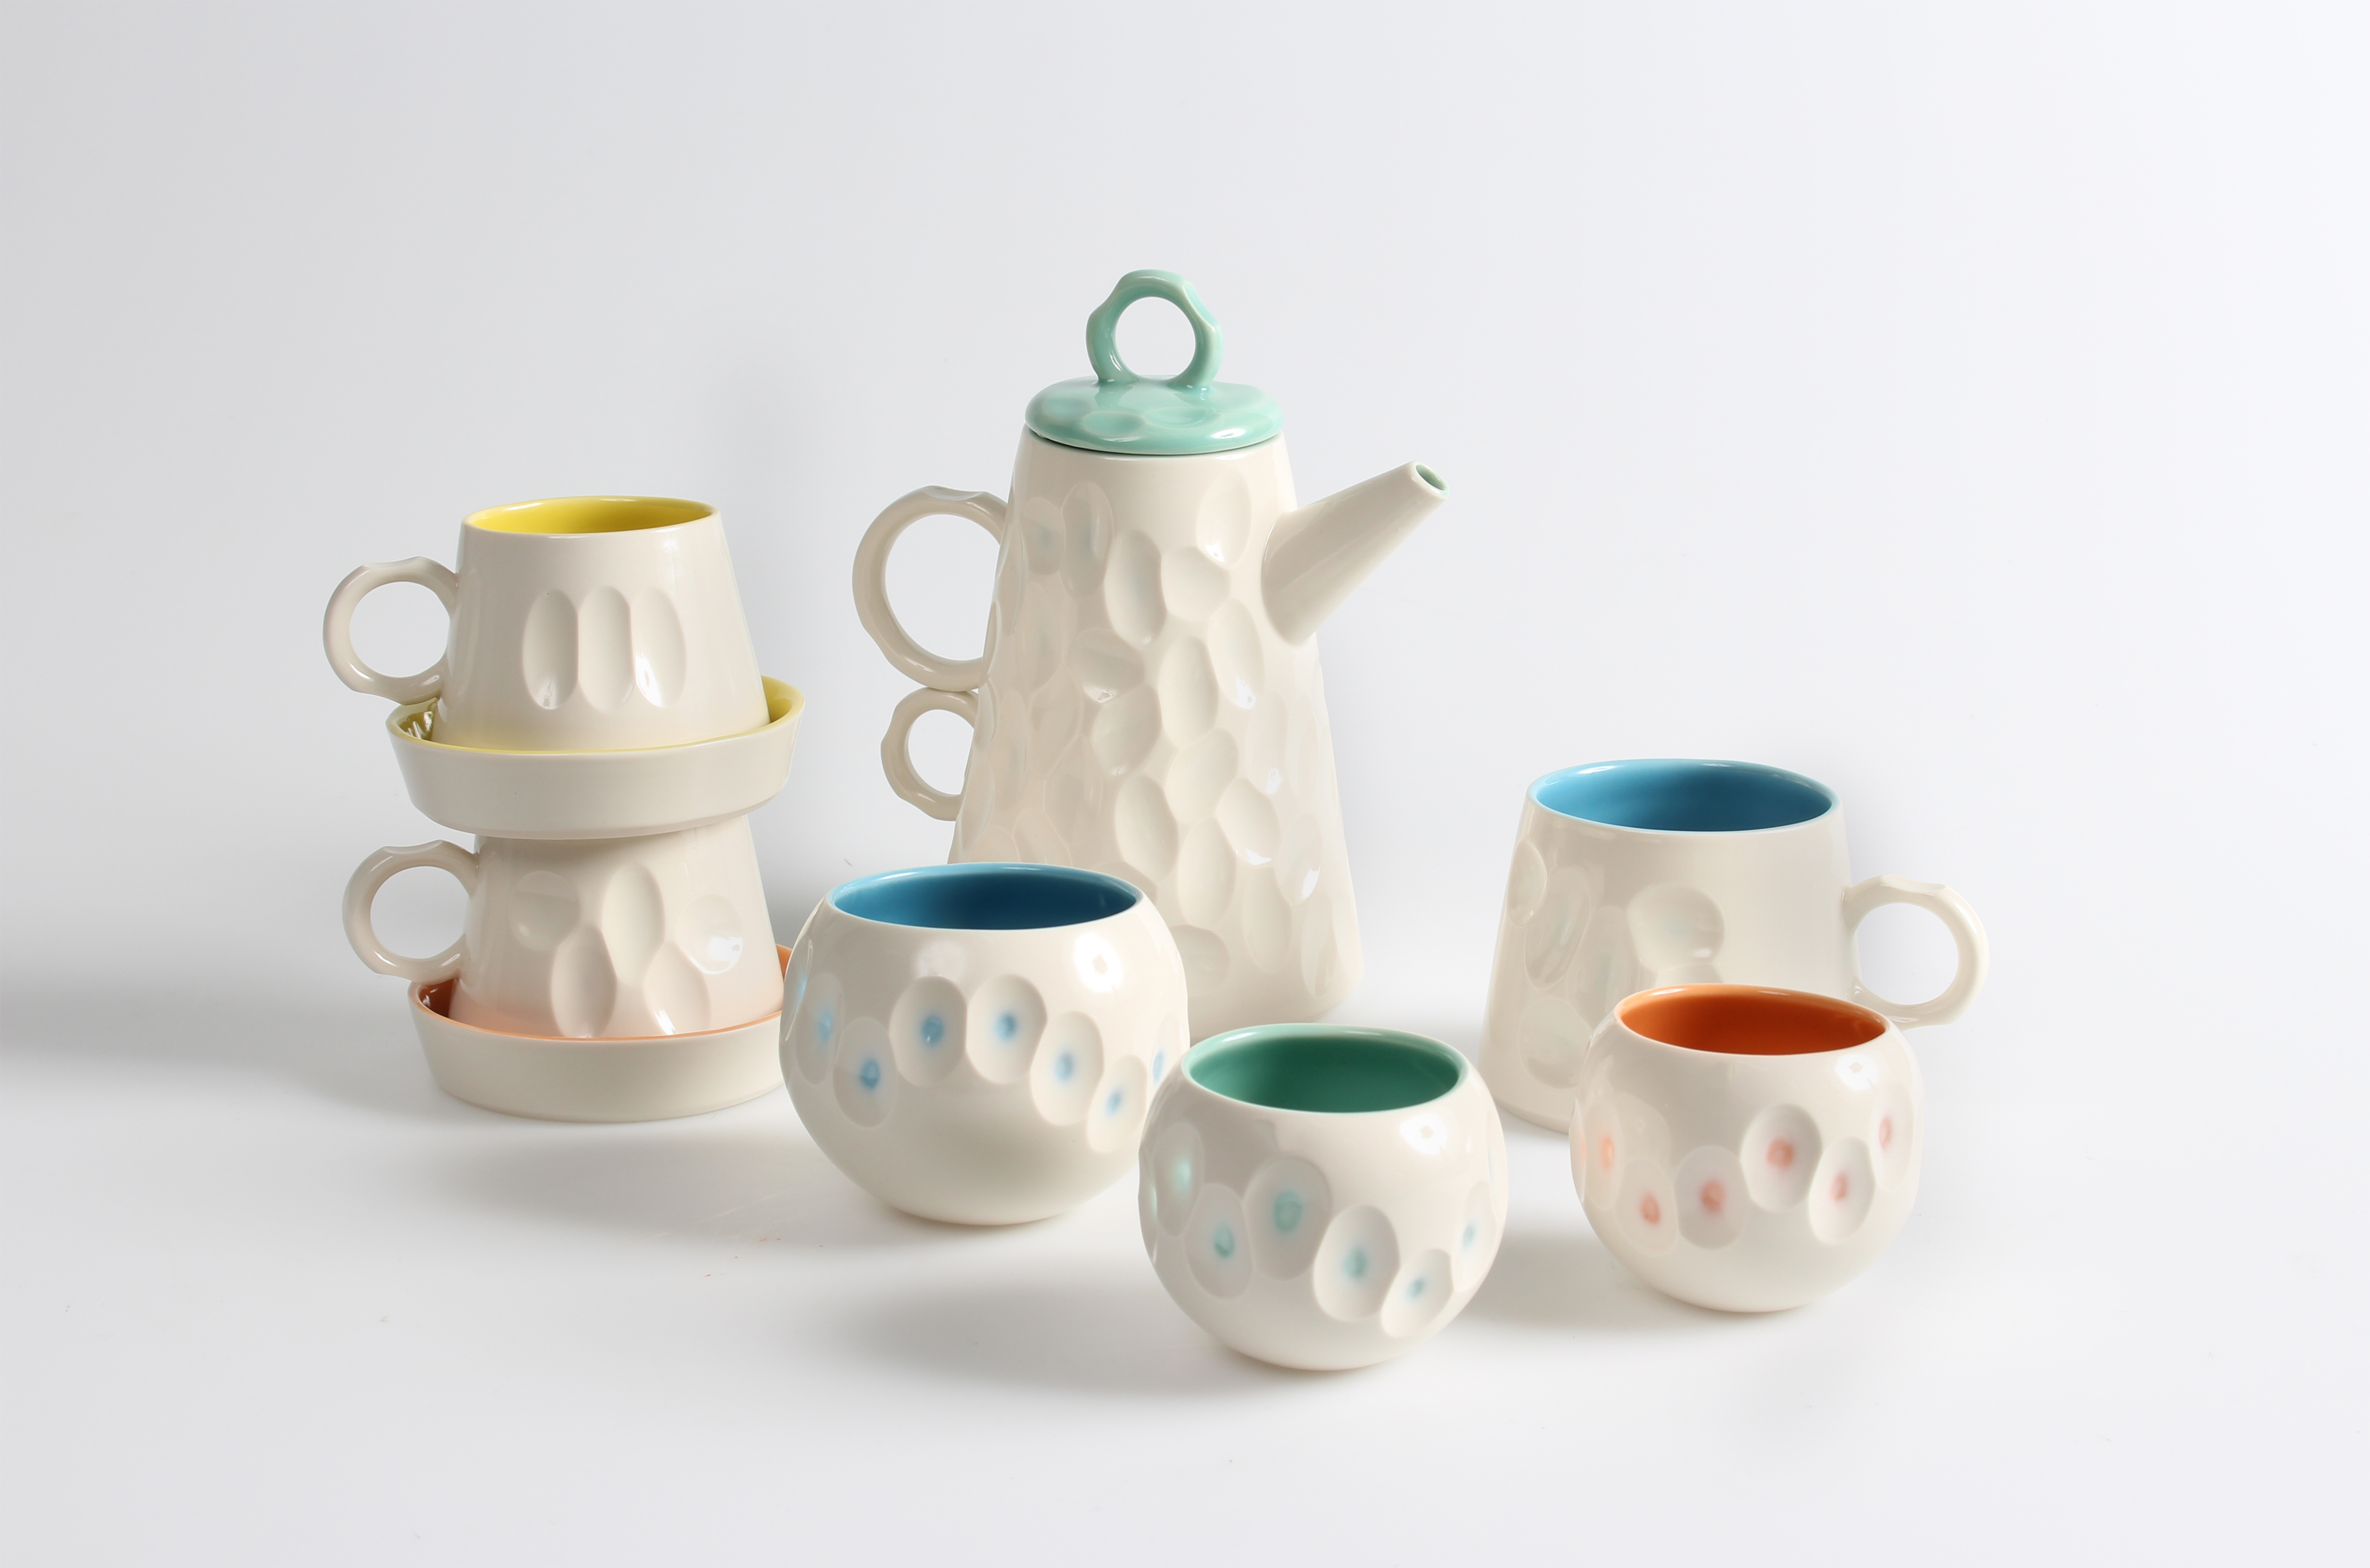 Battuto Porcelain Tableware